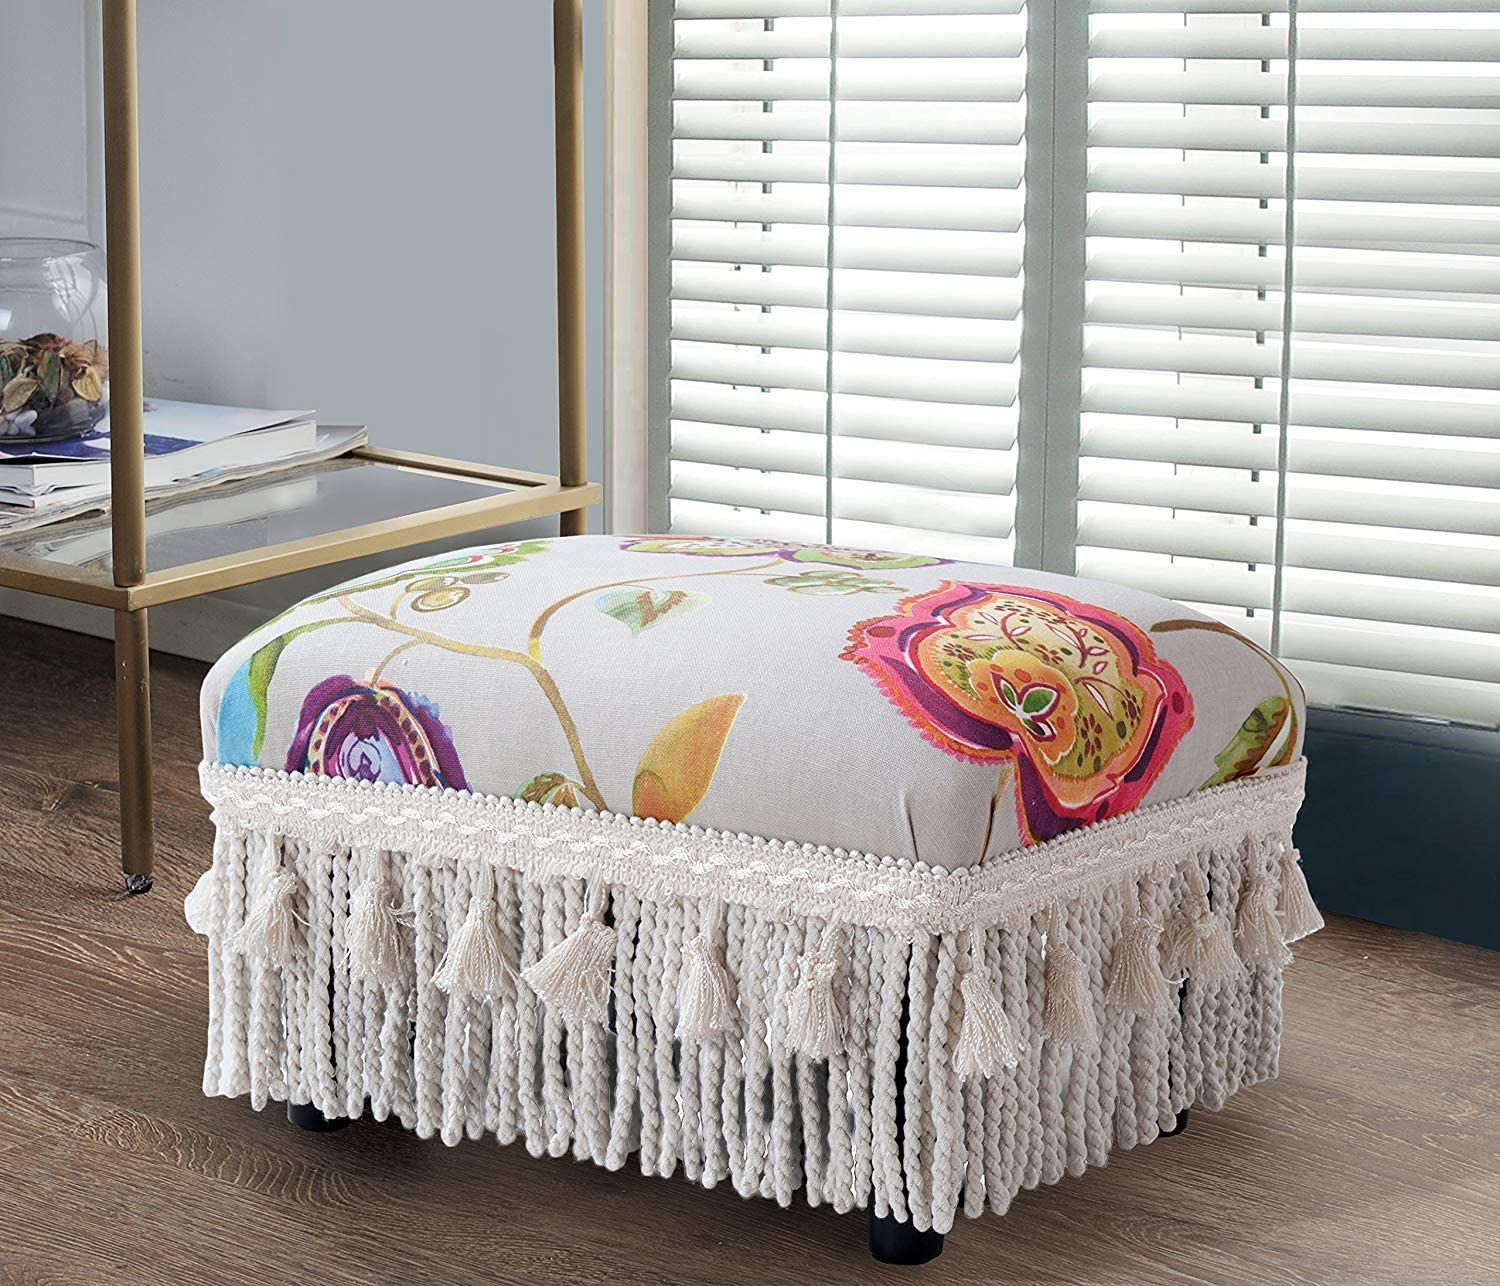 Jennifer Taylor Home Decorative Jennifer Taylor Fiona Collection Traditional Upholstered Rayon Blend Footstool With Fringe & Trim Tassels, Multi-Colored, Multicolor